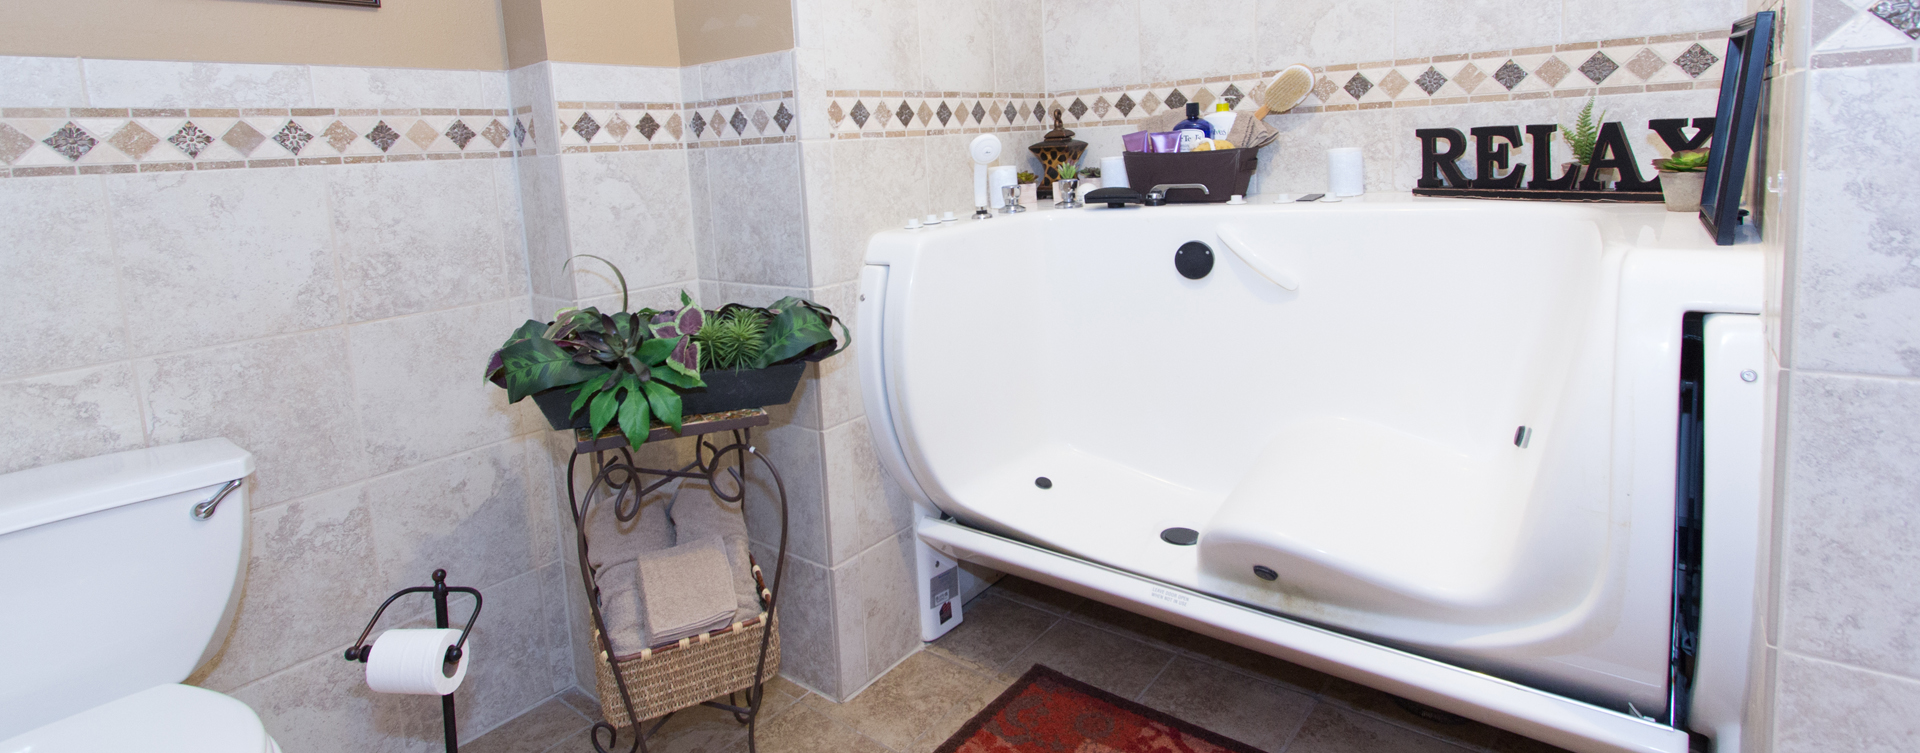 Our whirlpool bathtub creates a spa-like environment tailored to enhance your relaxation and enjoyment at Bickford of Bourbonnais